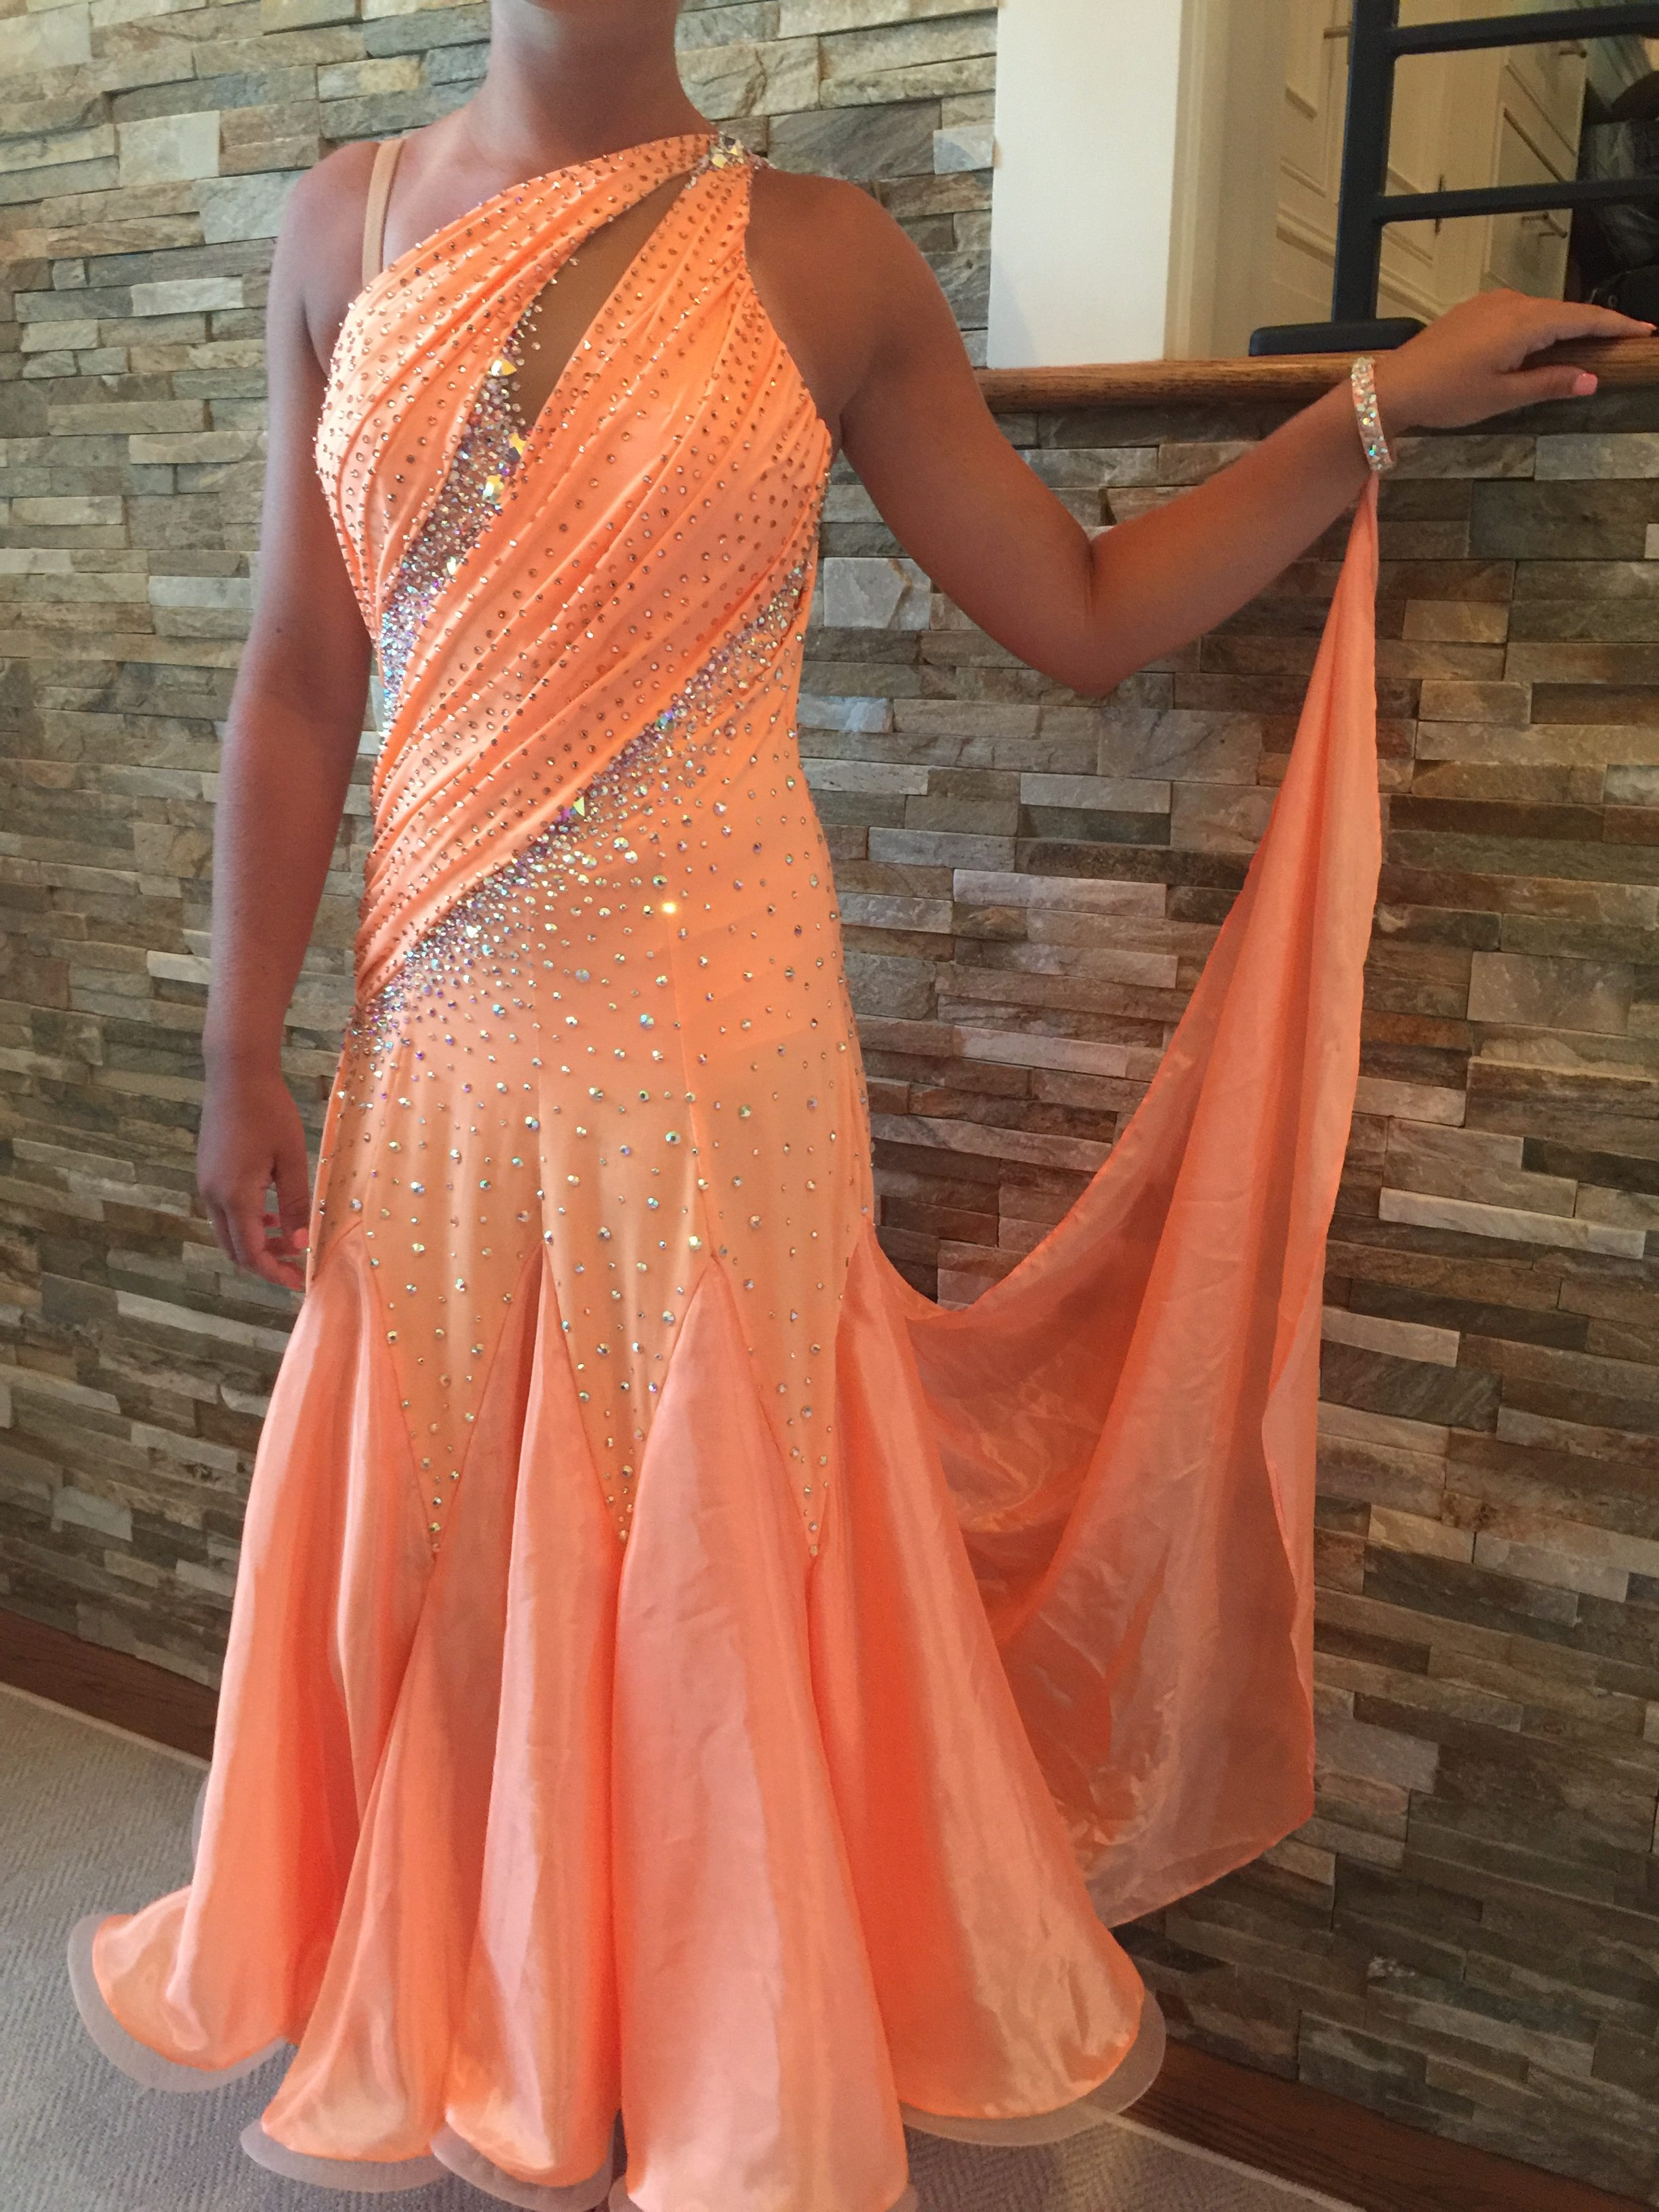 THE CORAL REEF BY MIMI G DESIGNS COUTURE COLLECTION 3